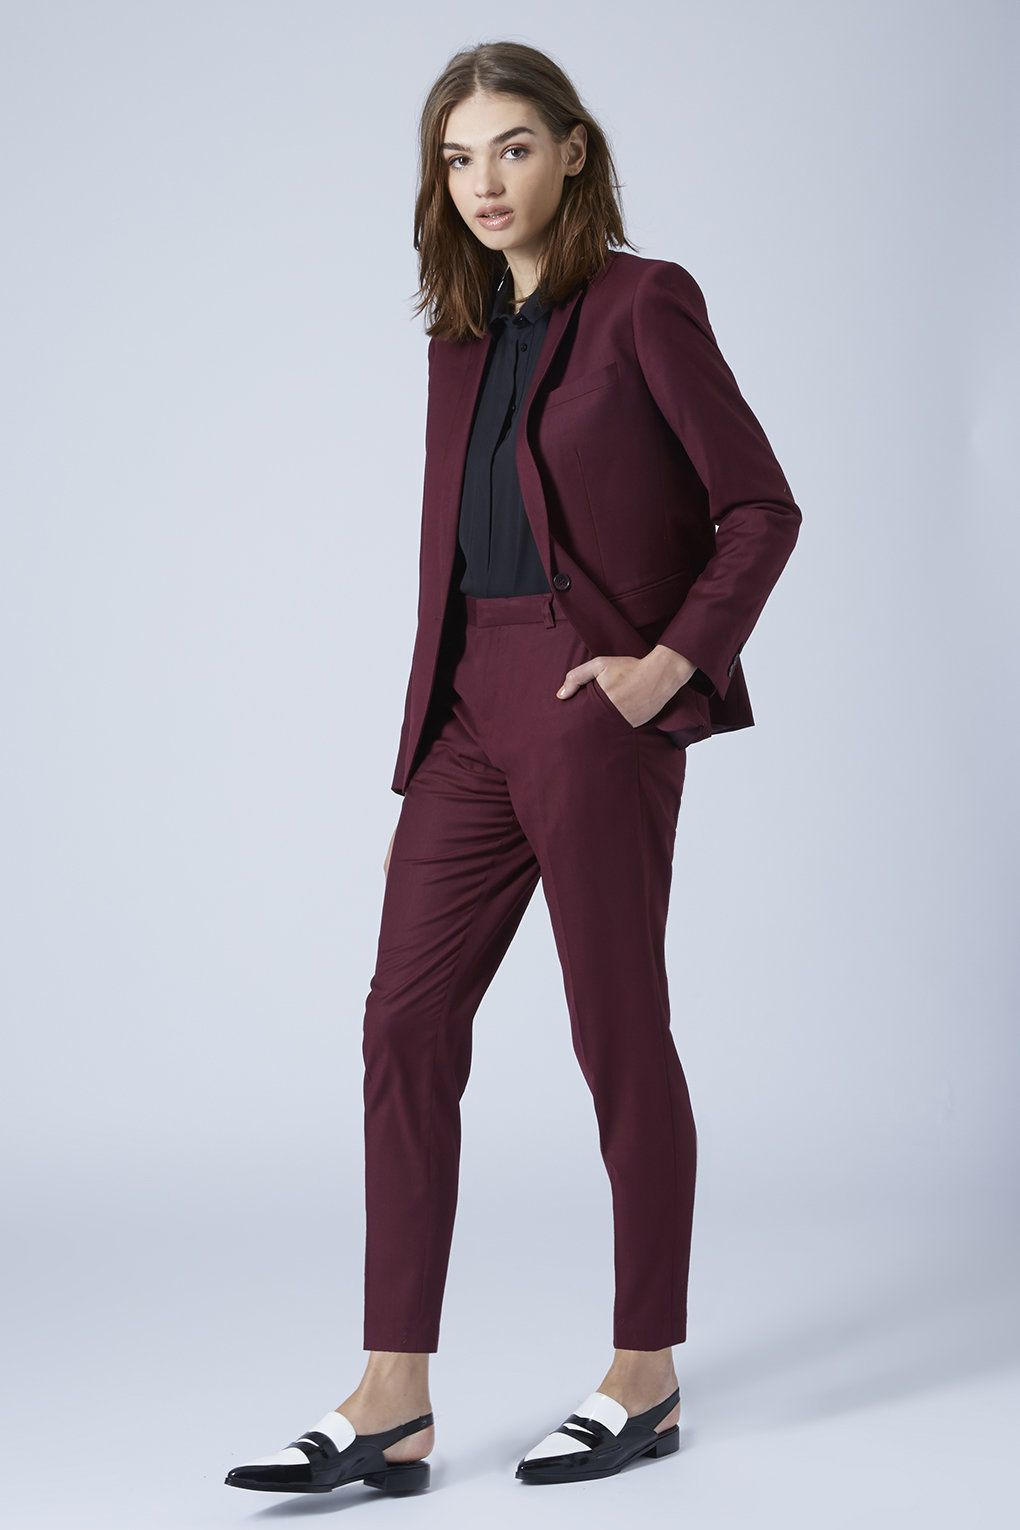 Premium Oxblood Suit Trousers - Trousers - Clothing - Topshop | My ...